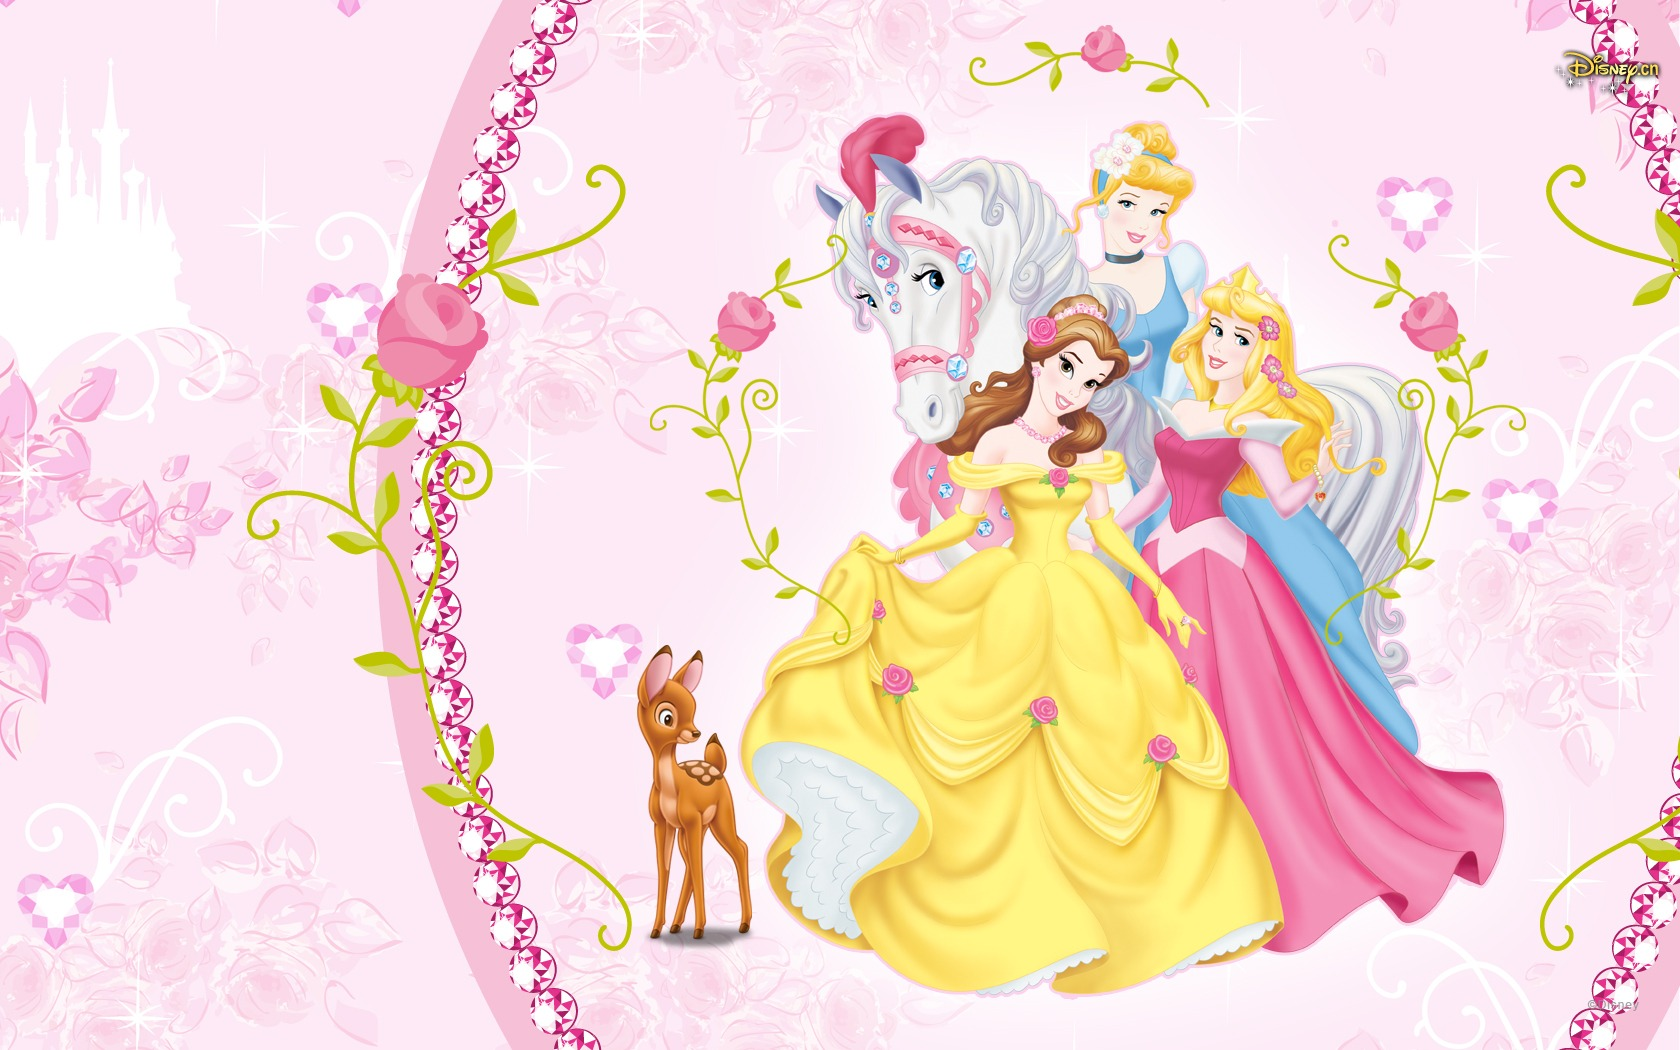 Disney Princess   Disney Princess Wallpaper 33693783 1680x1050